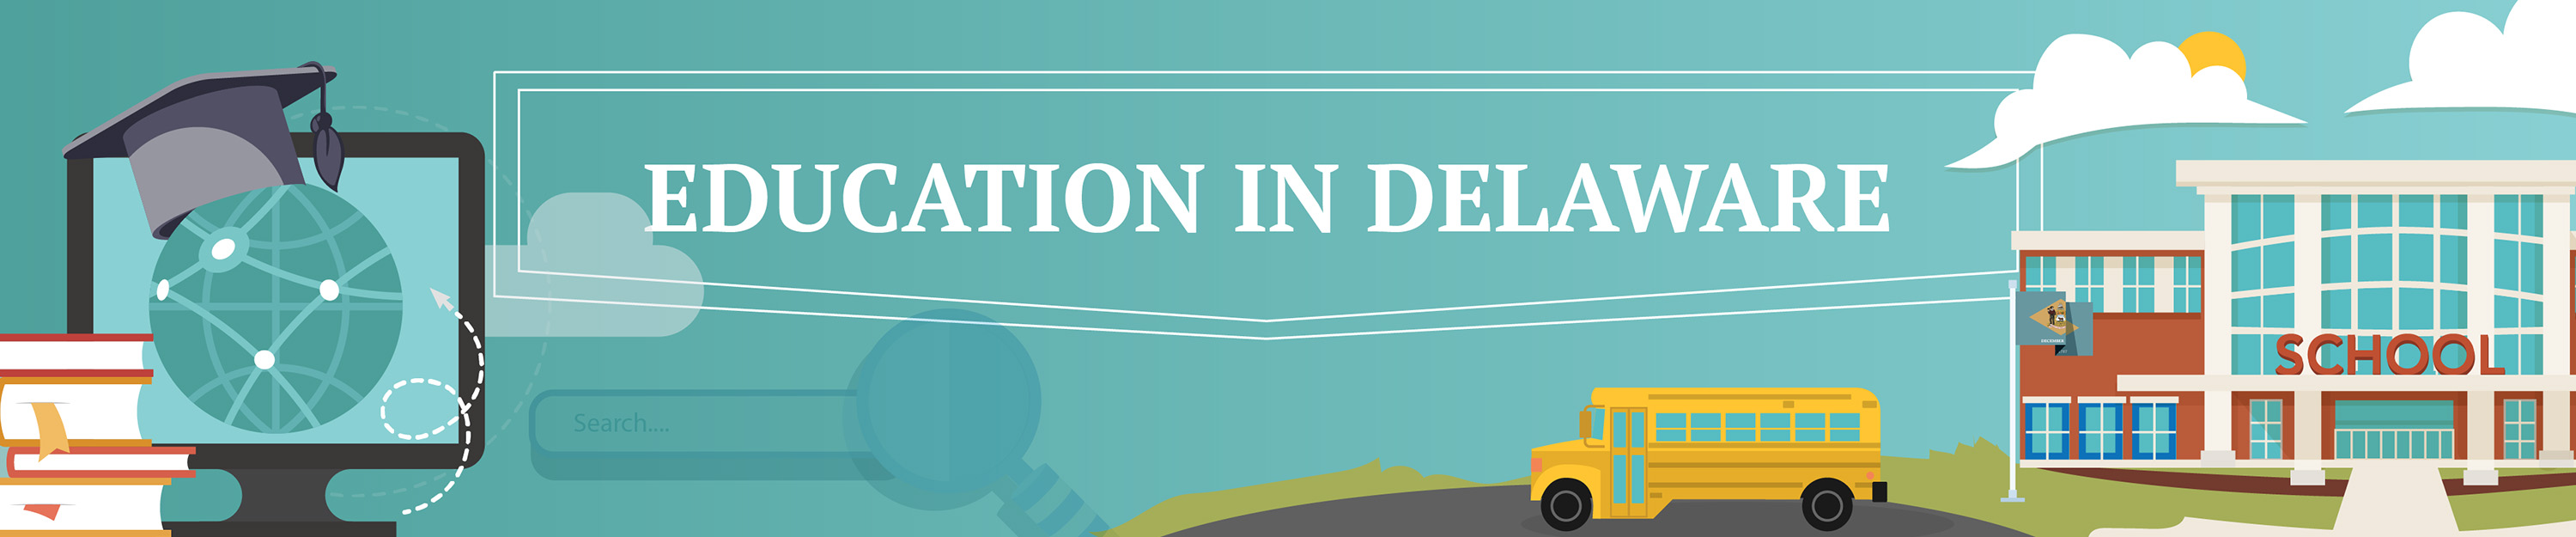 A graphic of a school, book, graduation cap and school bus with the text Education in Delaware